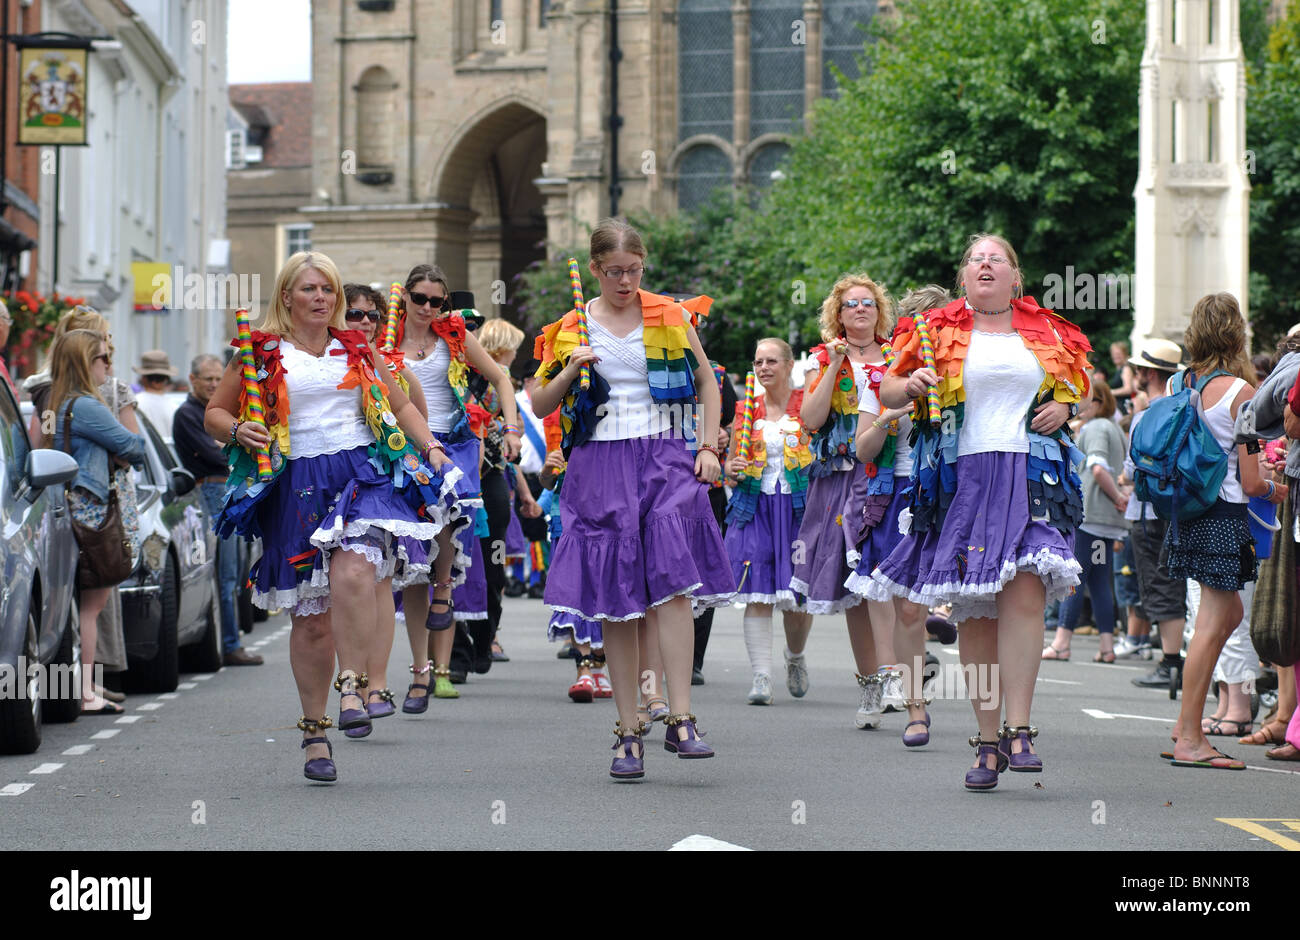 Loose Women morris dancers in the procession at Warwick Folk Festival - Stock Image